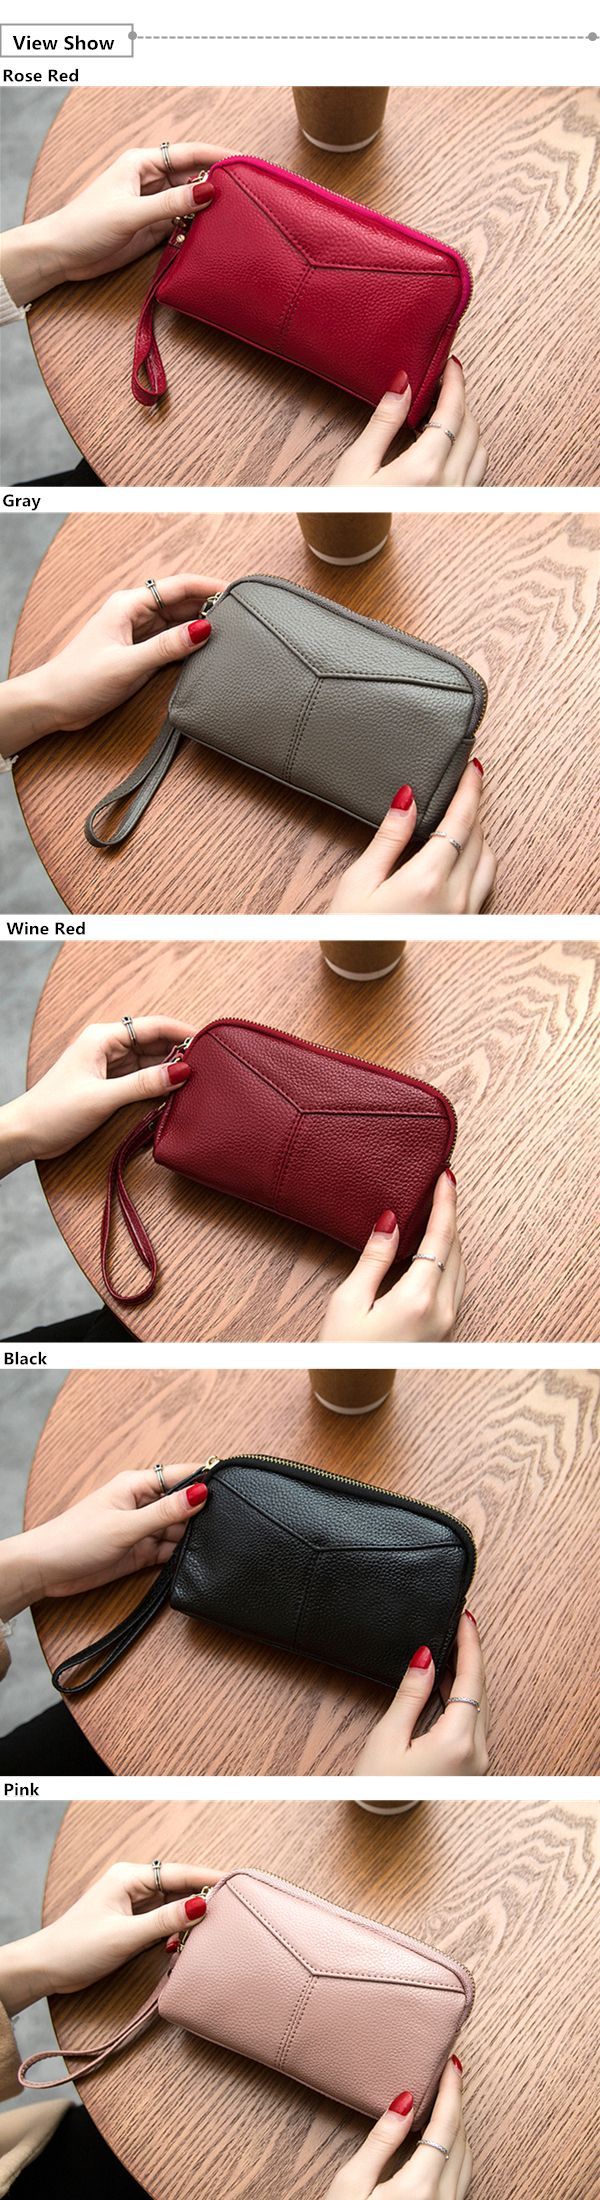 Women Genuine Cowhide 6.3 Inches Phone Clutch Wallet Keys Card Coin Holder 5 Colors